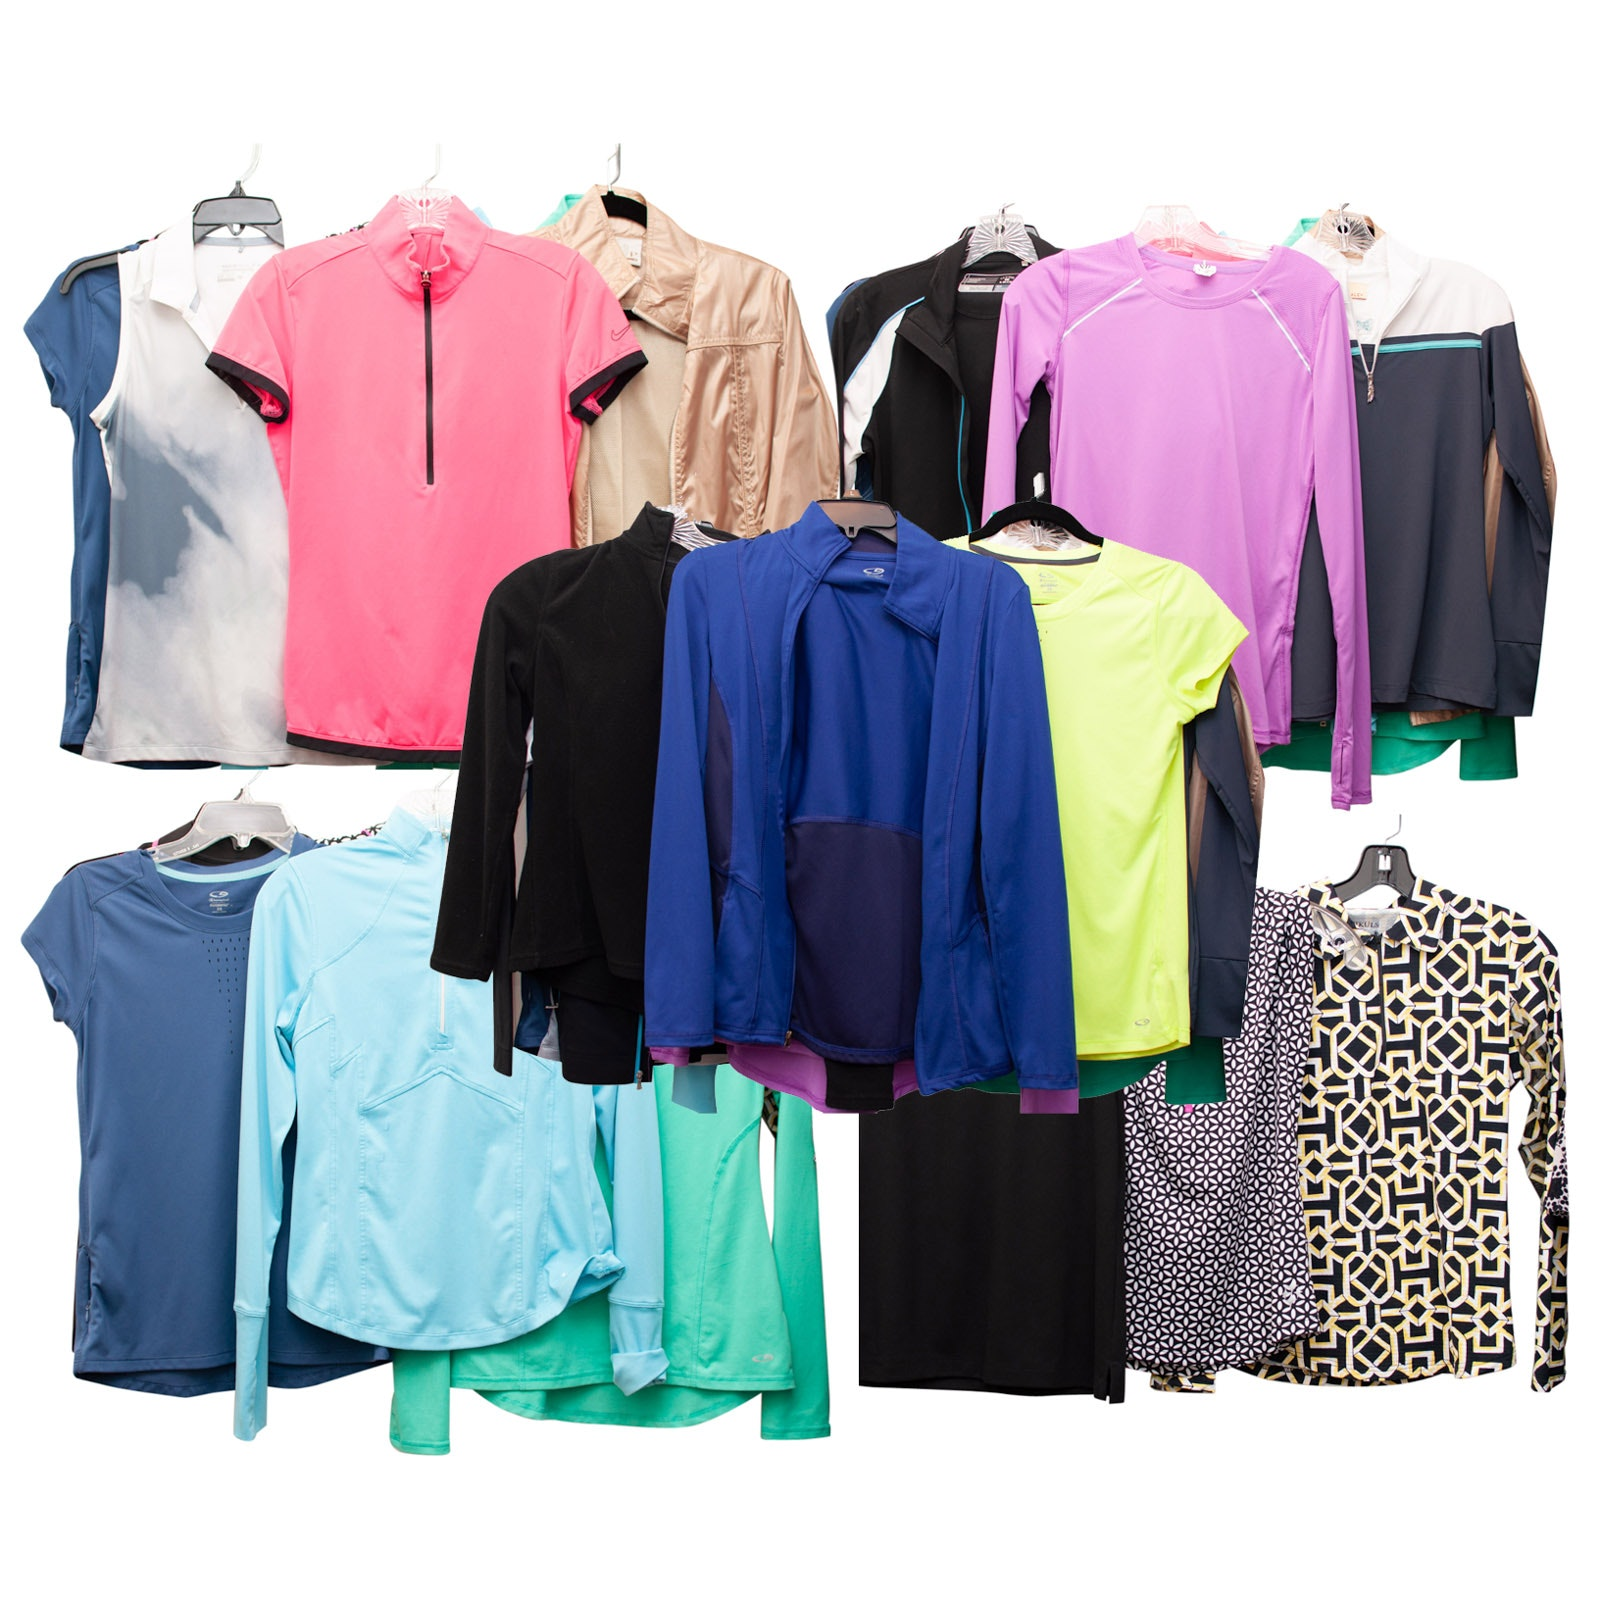 Women's Sports Clothing Featuring Nike Golf, Annika, Golftini and Others